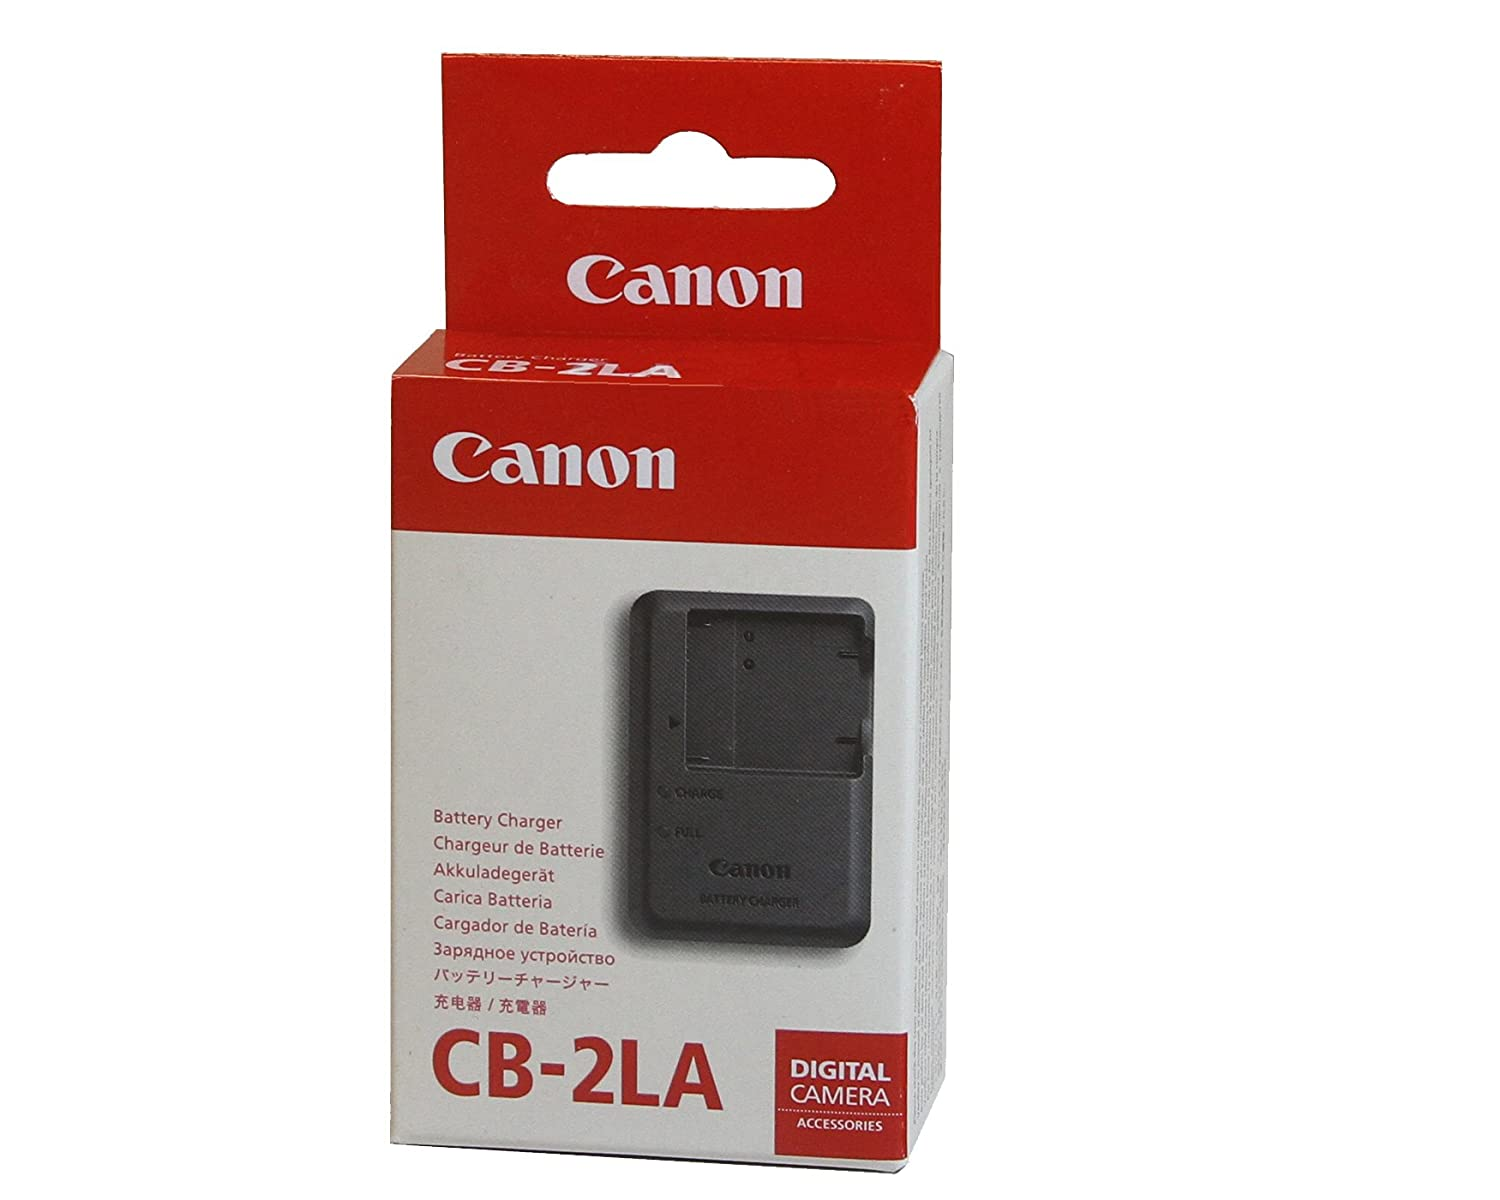 Amazon.com: Cargador de batería Canon CB-2LA: Camera & Photo